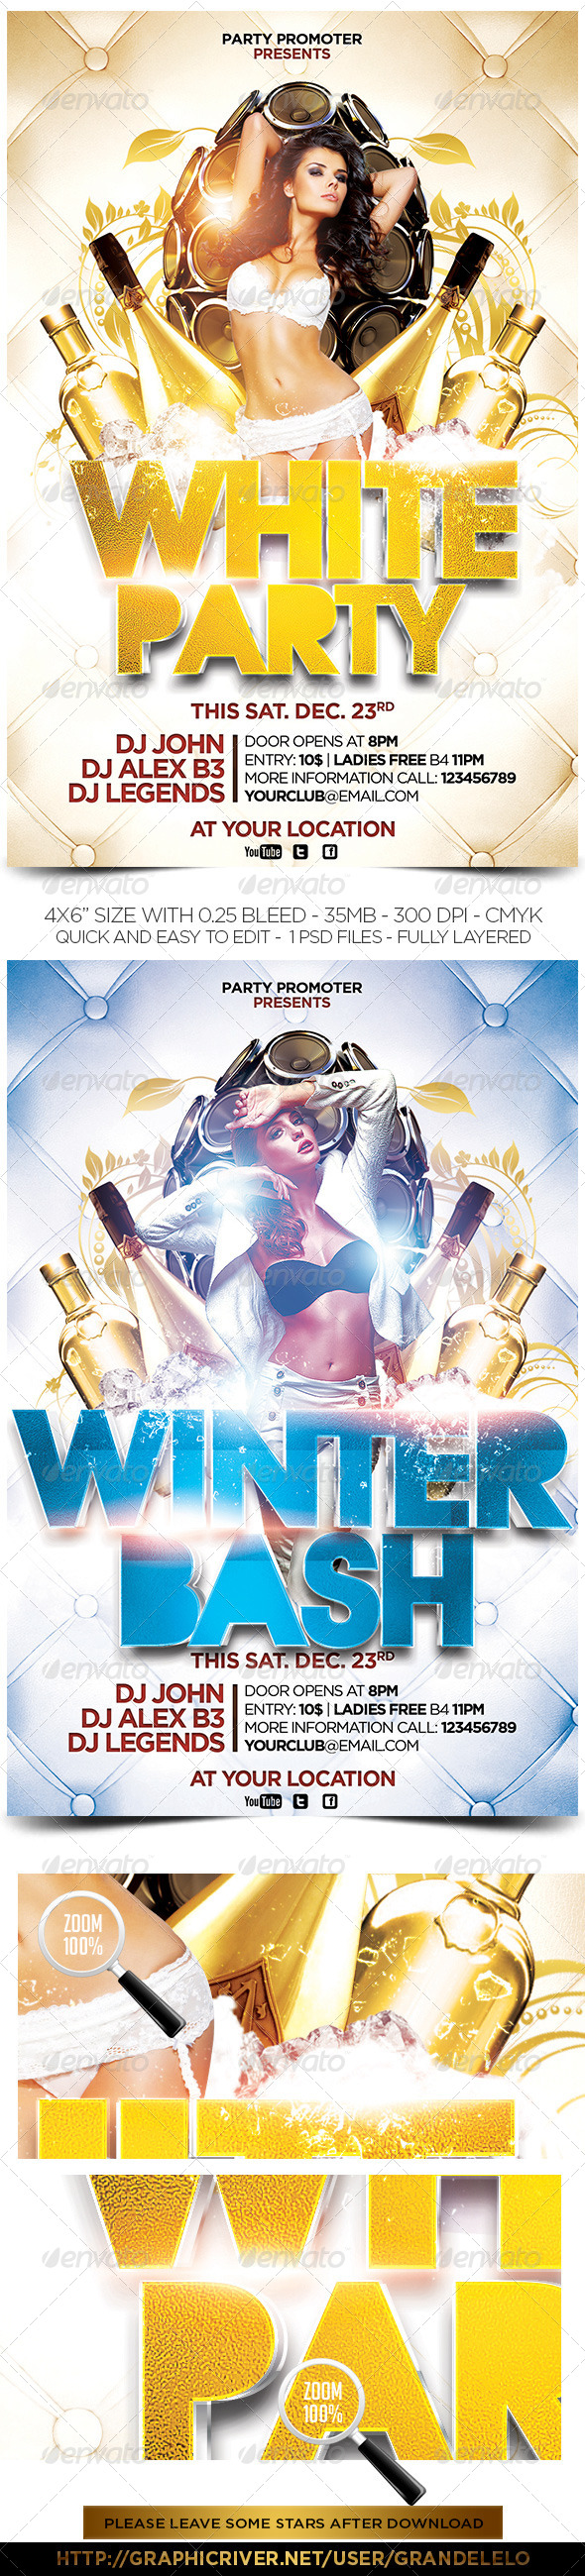 White and Winter Party Flyers - Clubs & Parties Events